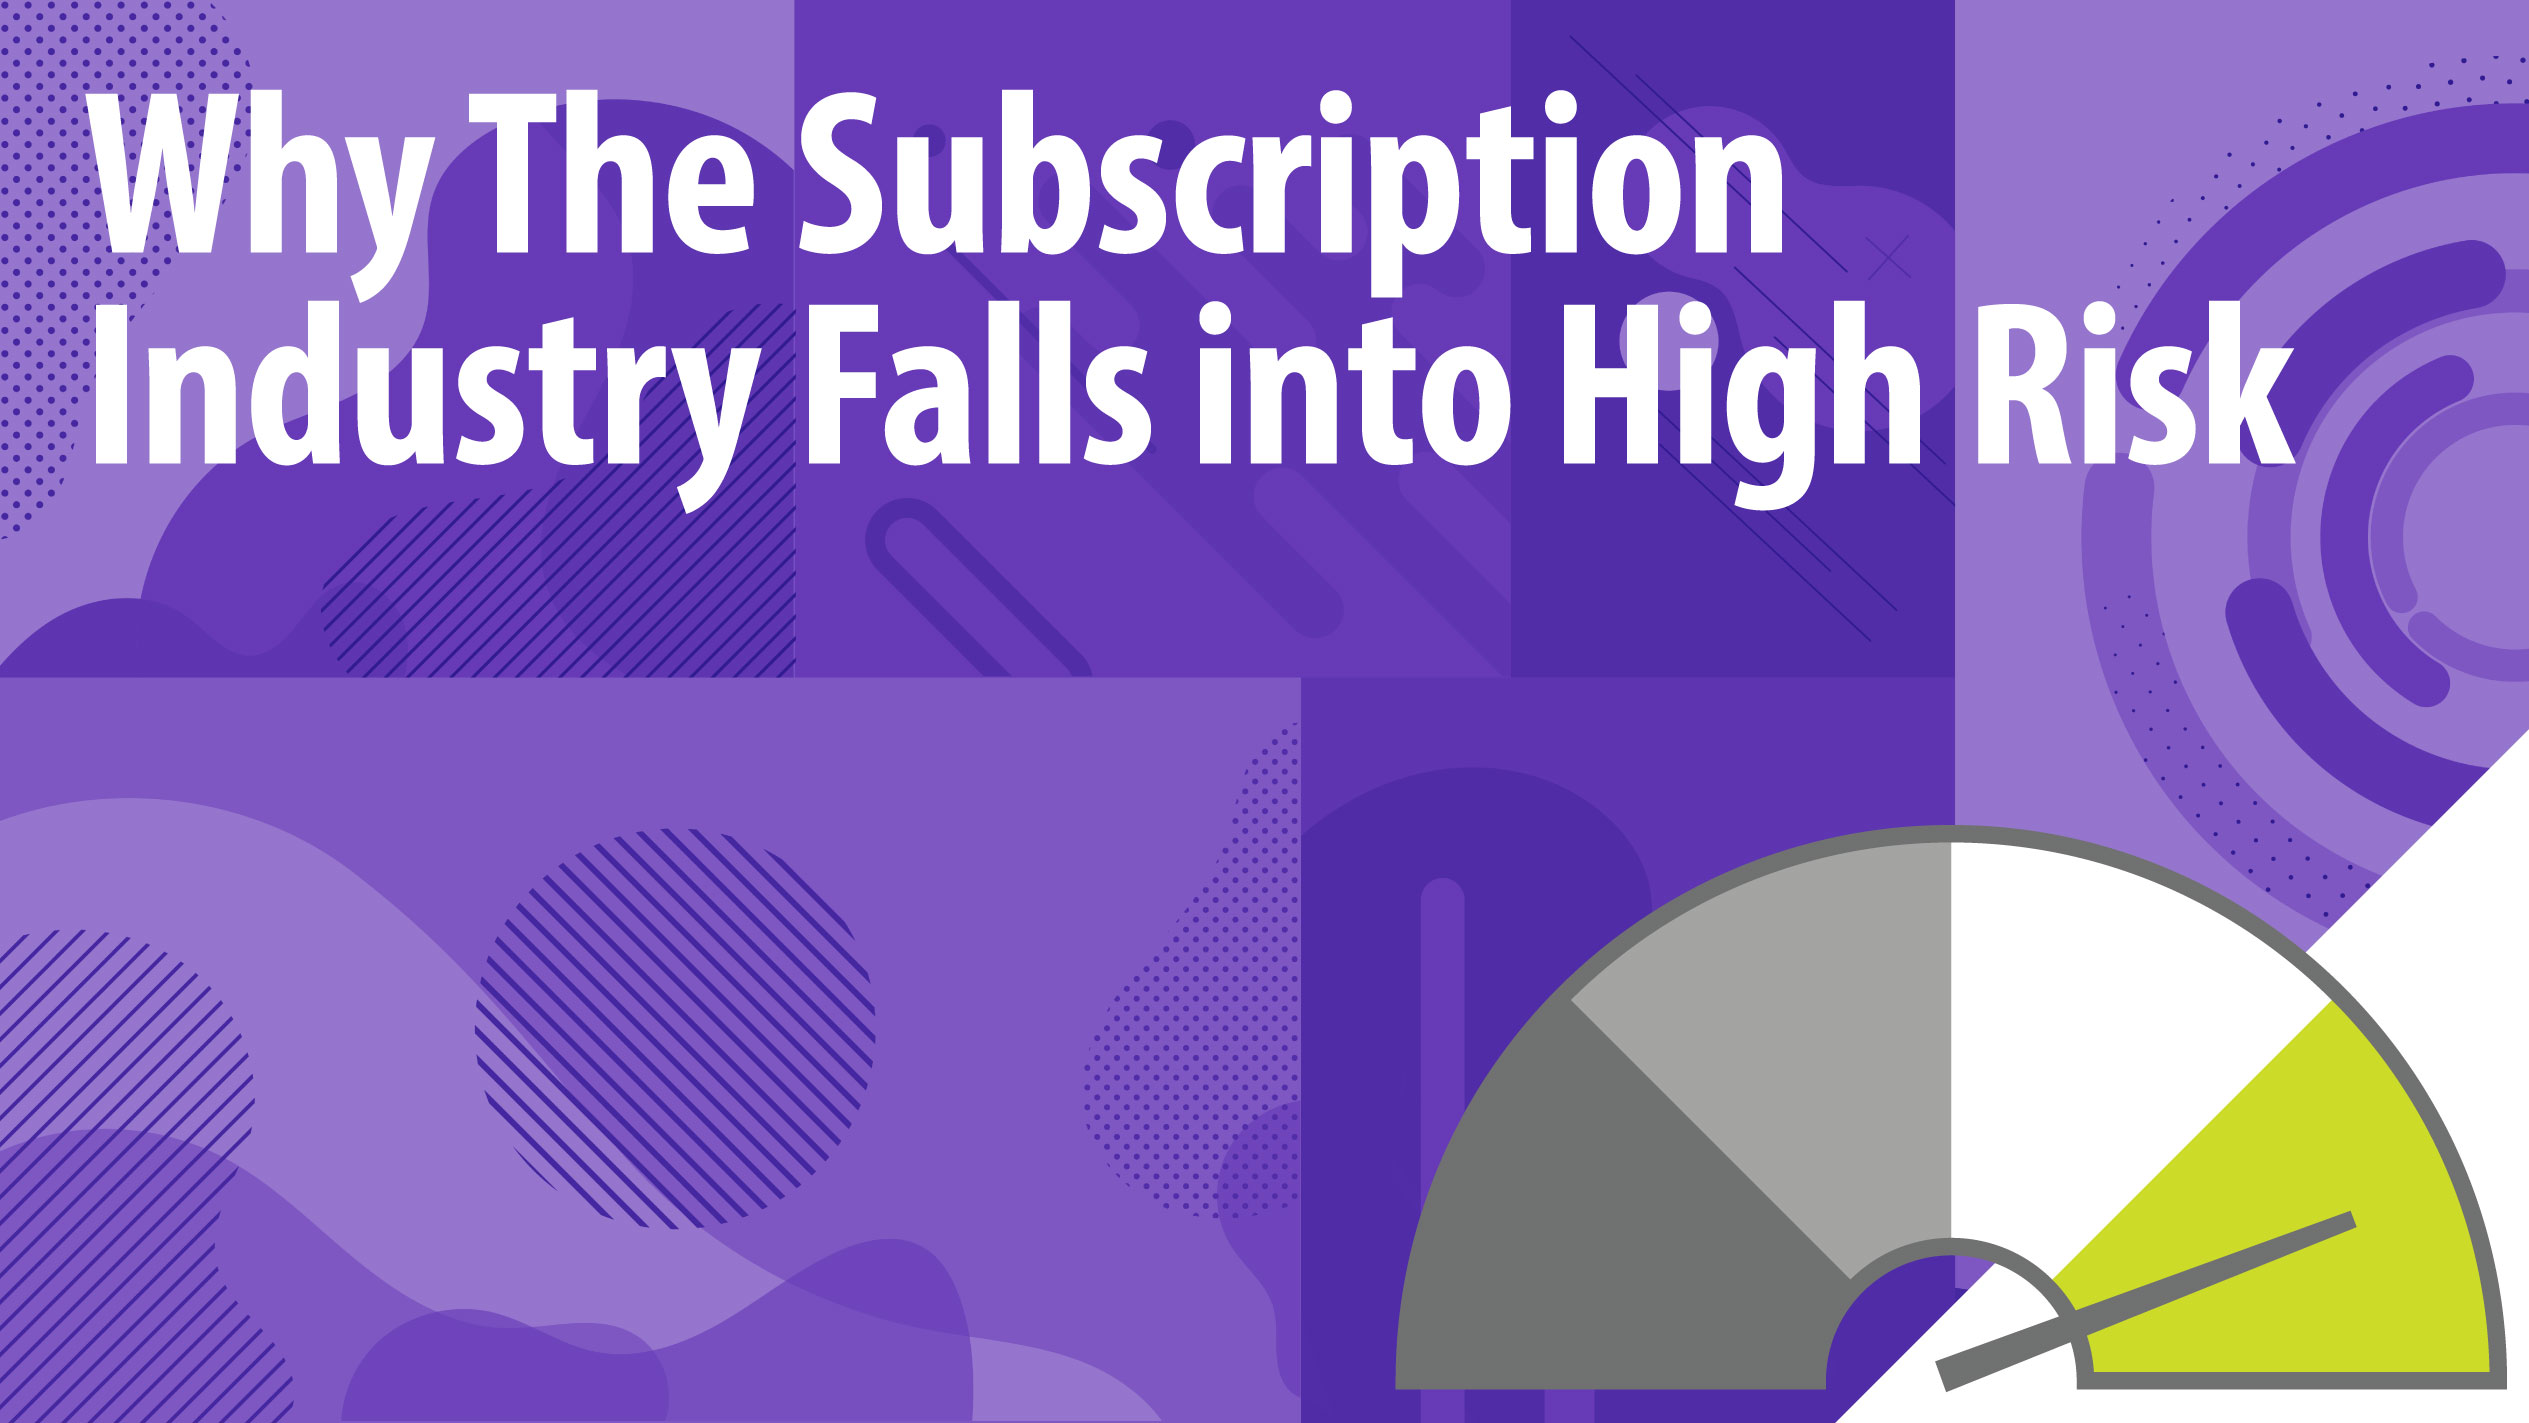 Why The Subscription Industry Falls into High Risk